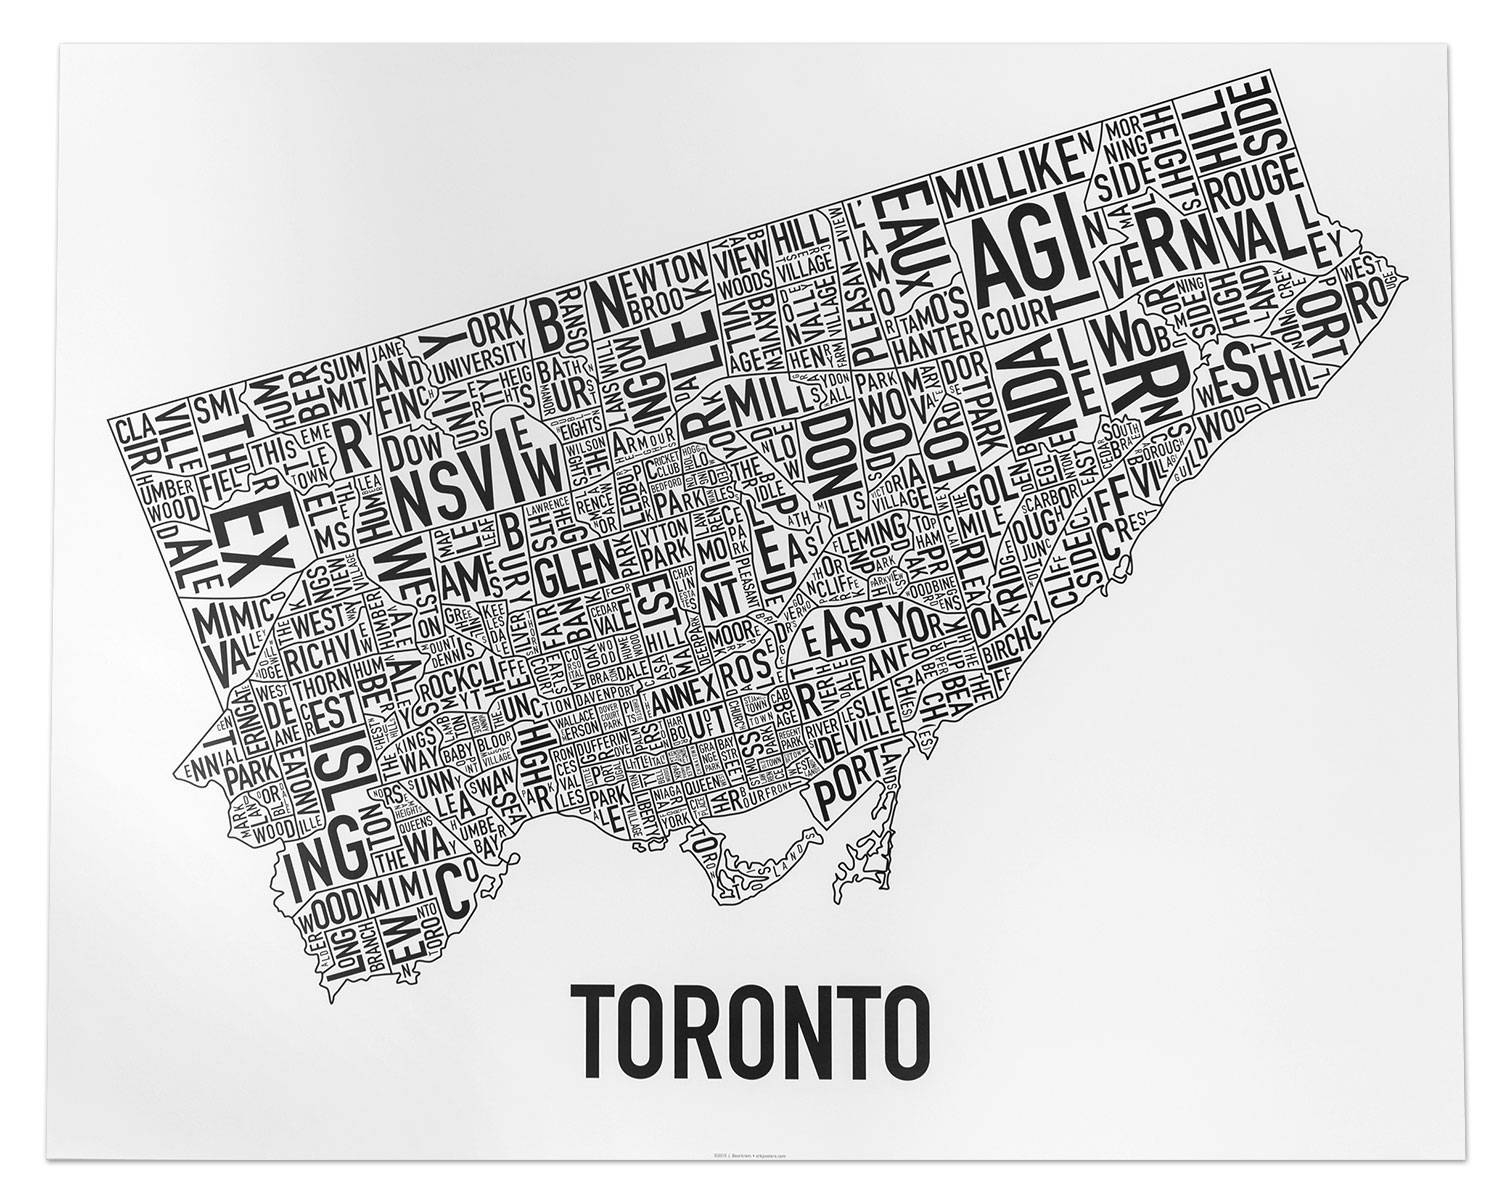 Toronto Neighborhood Map Posters & Prints – Display Your Love Of Intended For Current Map Wall Art Toronto (View 14 of 20)